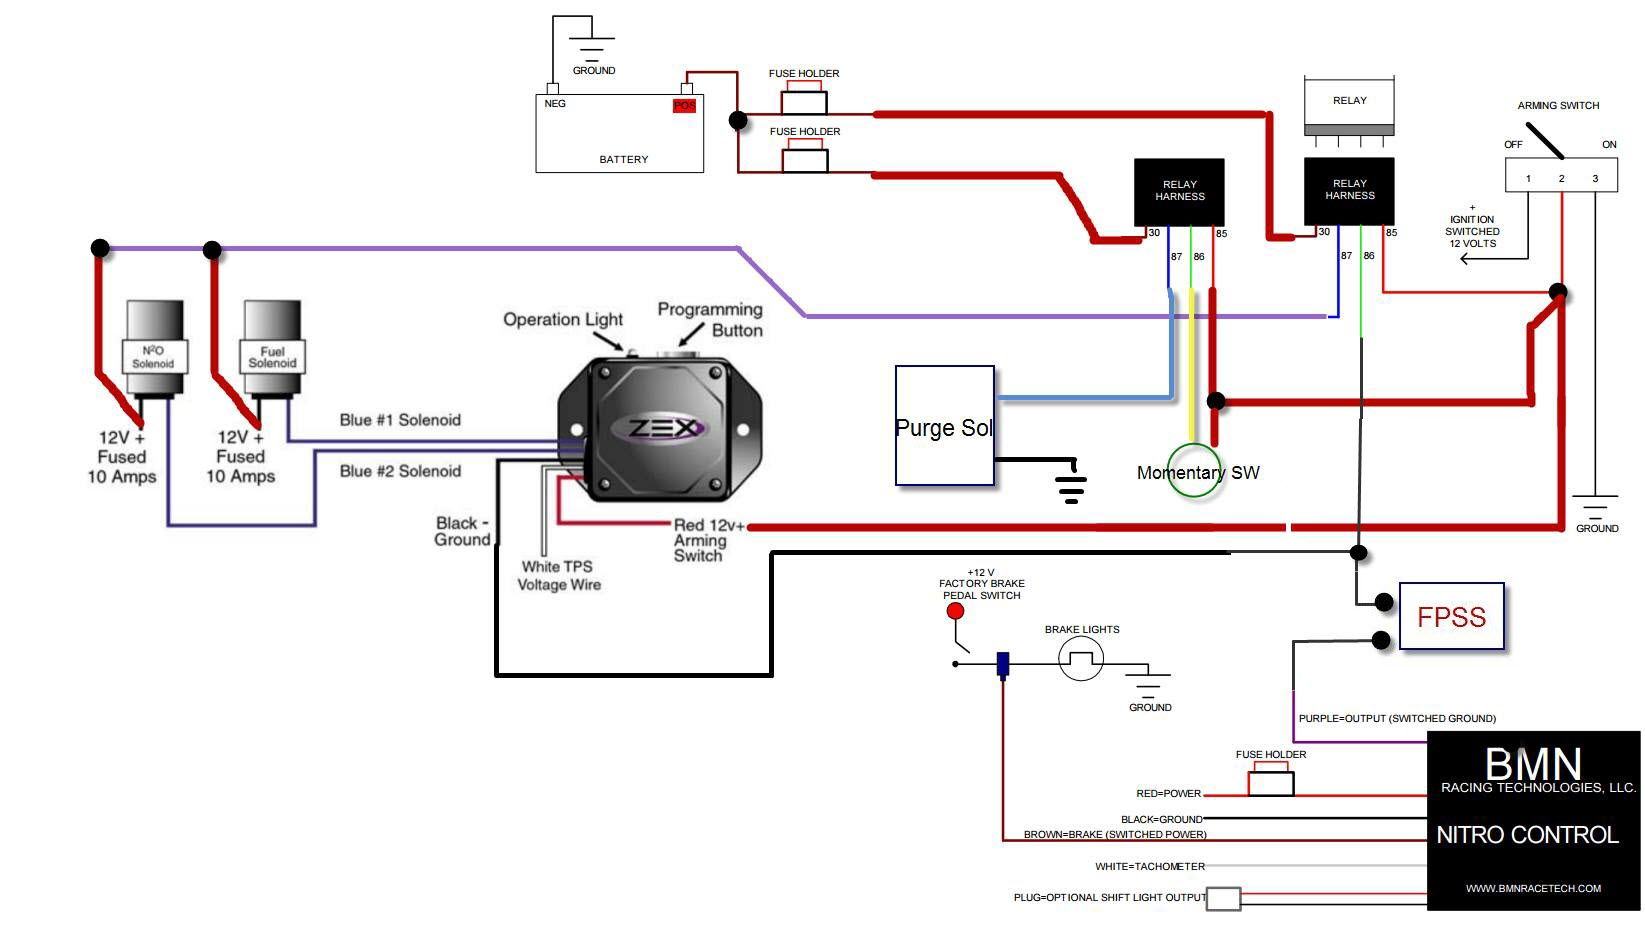 hight resolution of nitrous wiring bmn nitro with zex stand alone dbw tps ls1tech home electrical wiring diagrams zex wiring diagram